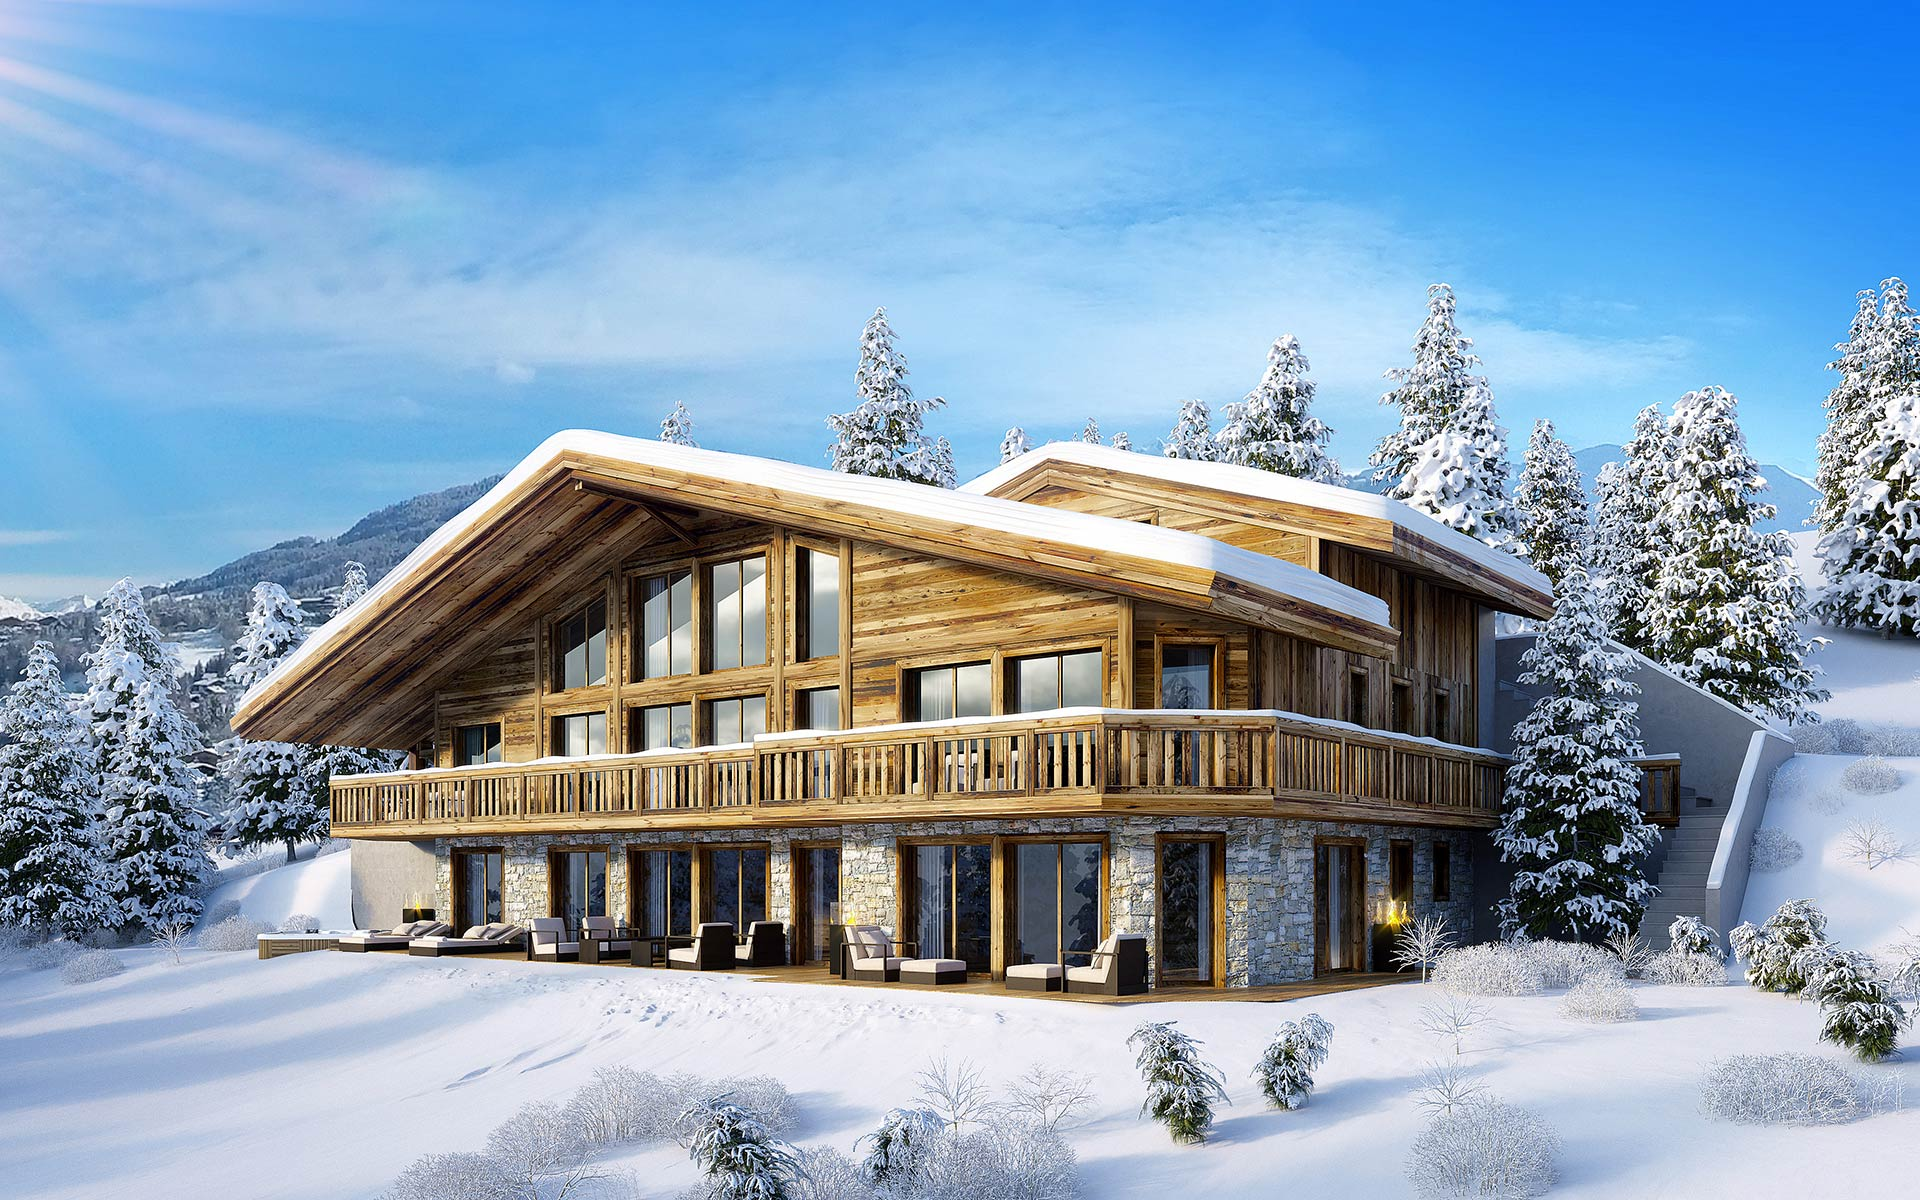 3D image of the exterior of a chalet in Courchevel